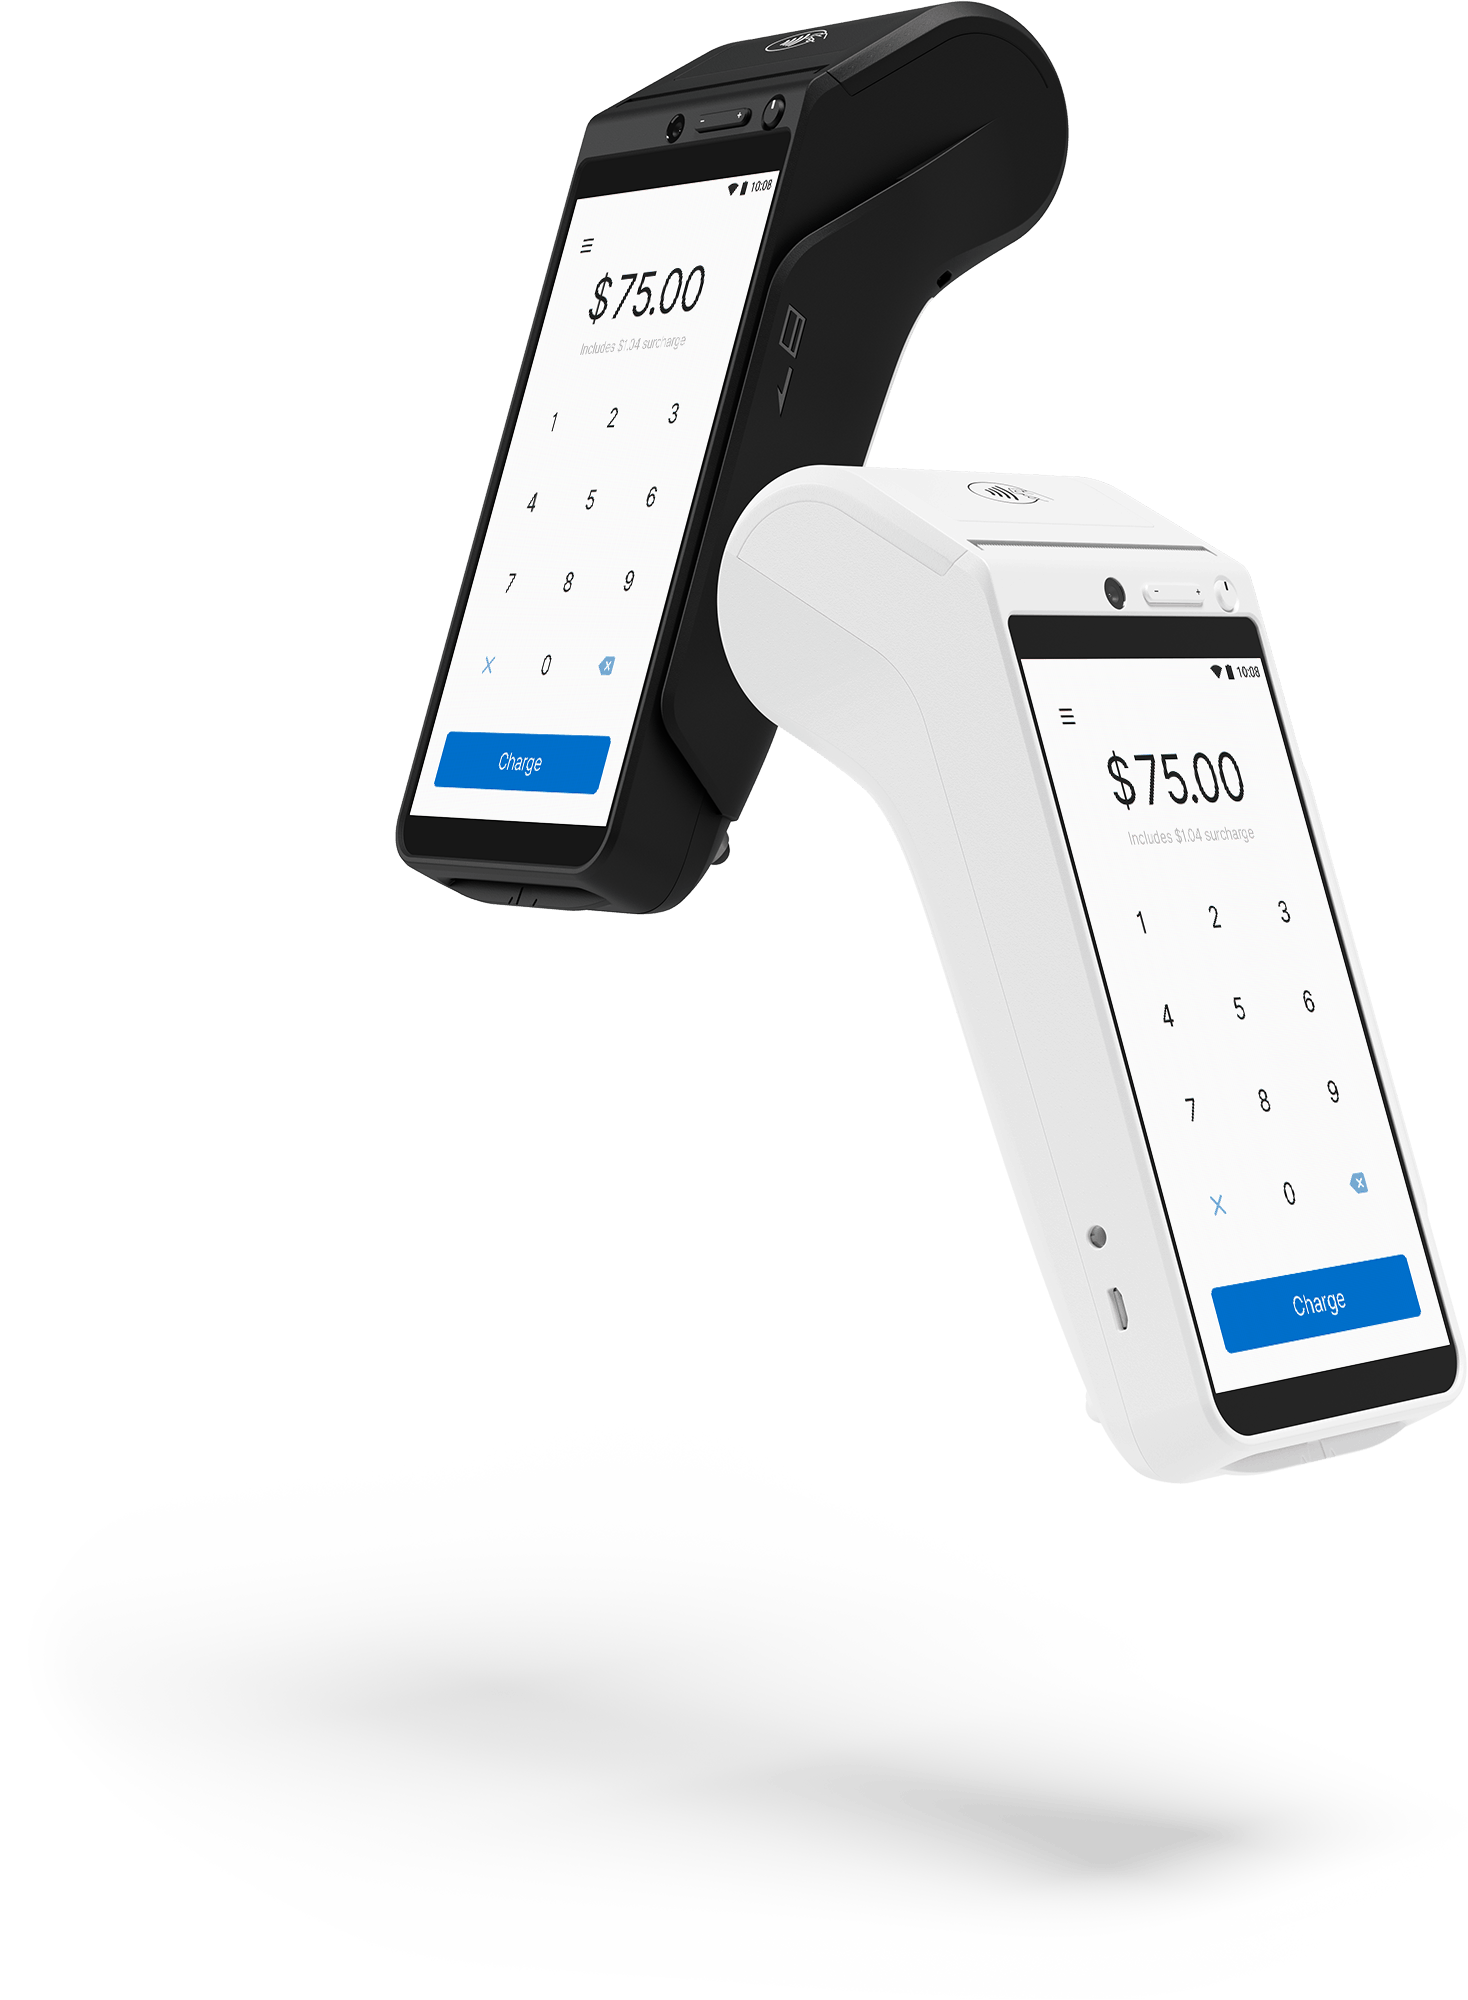 eftpos-terminal-for-Australian-merchants